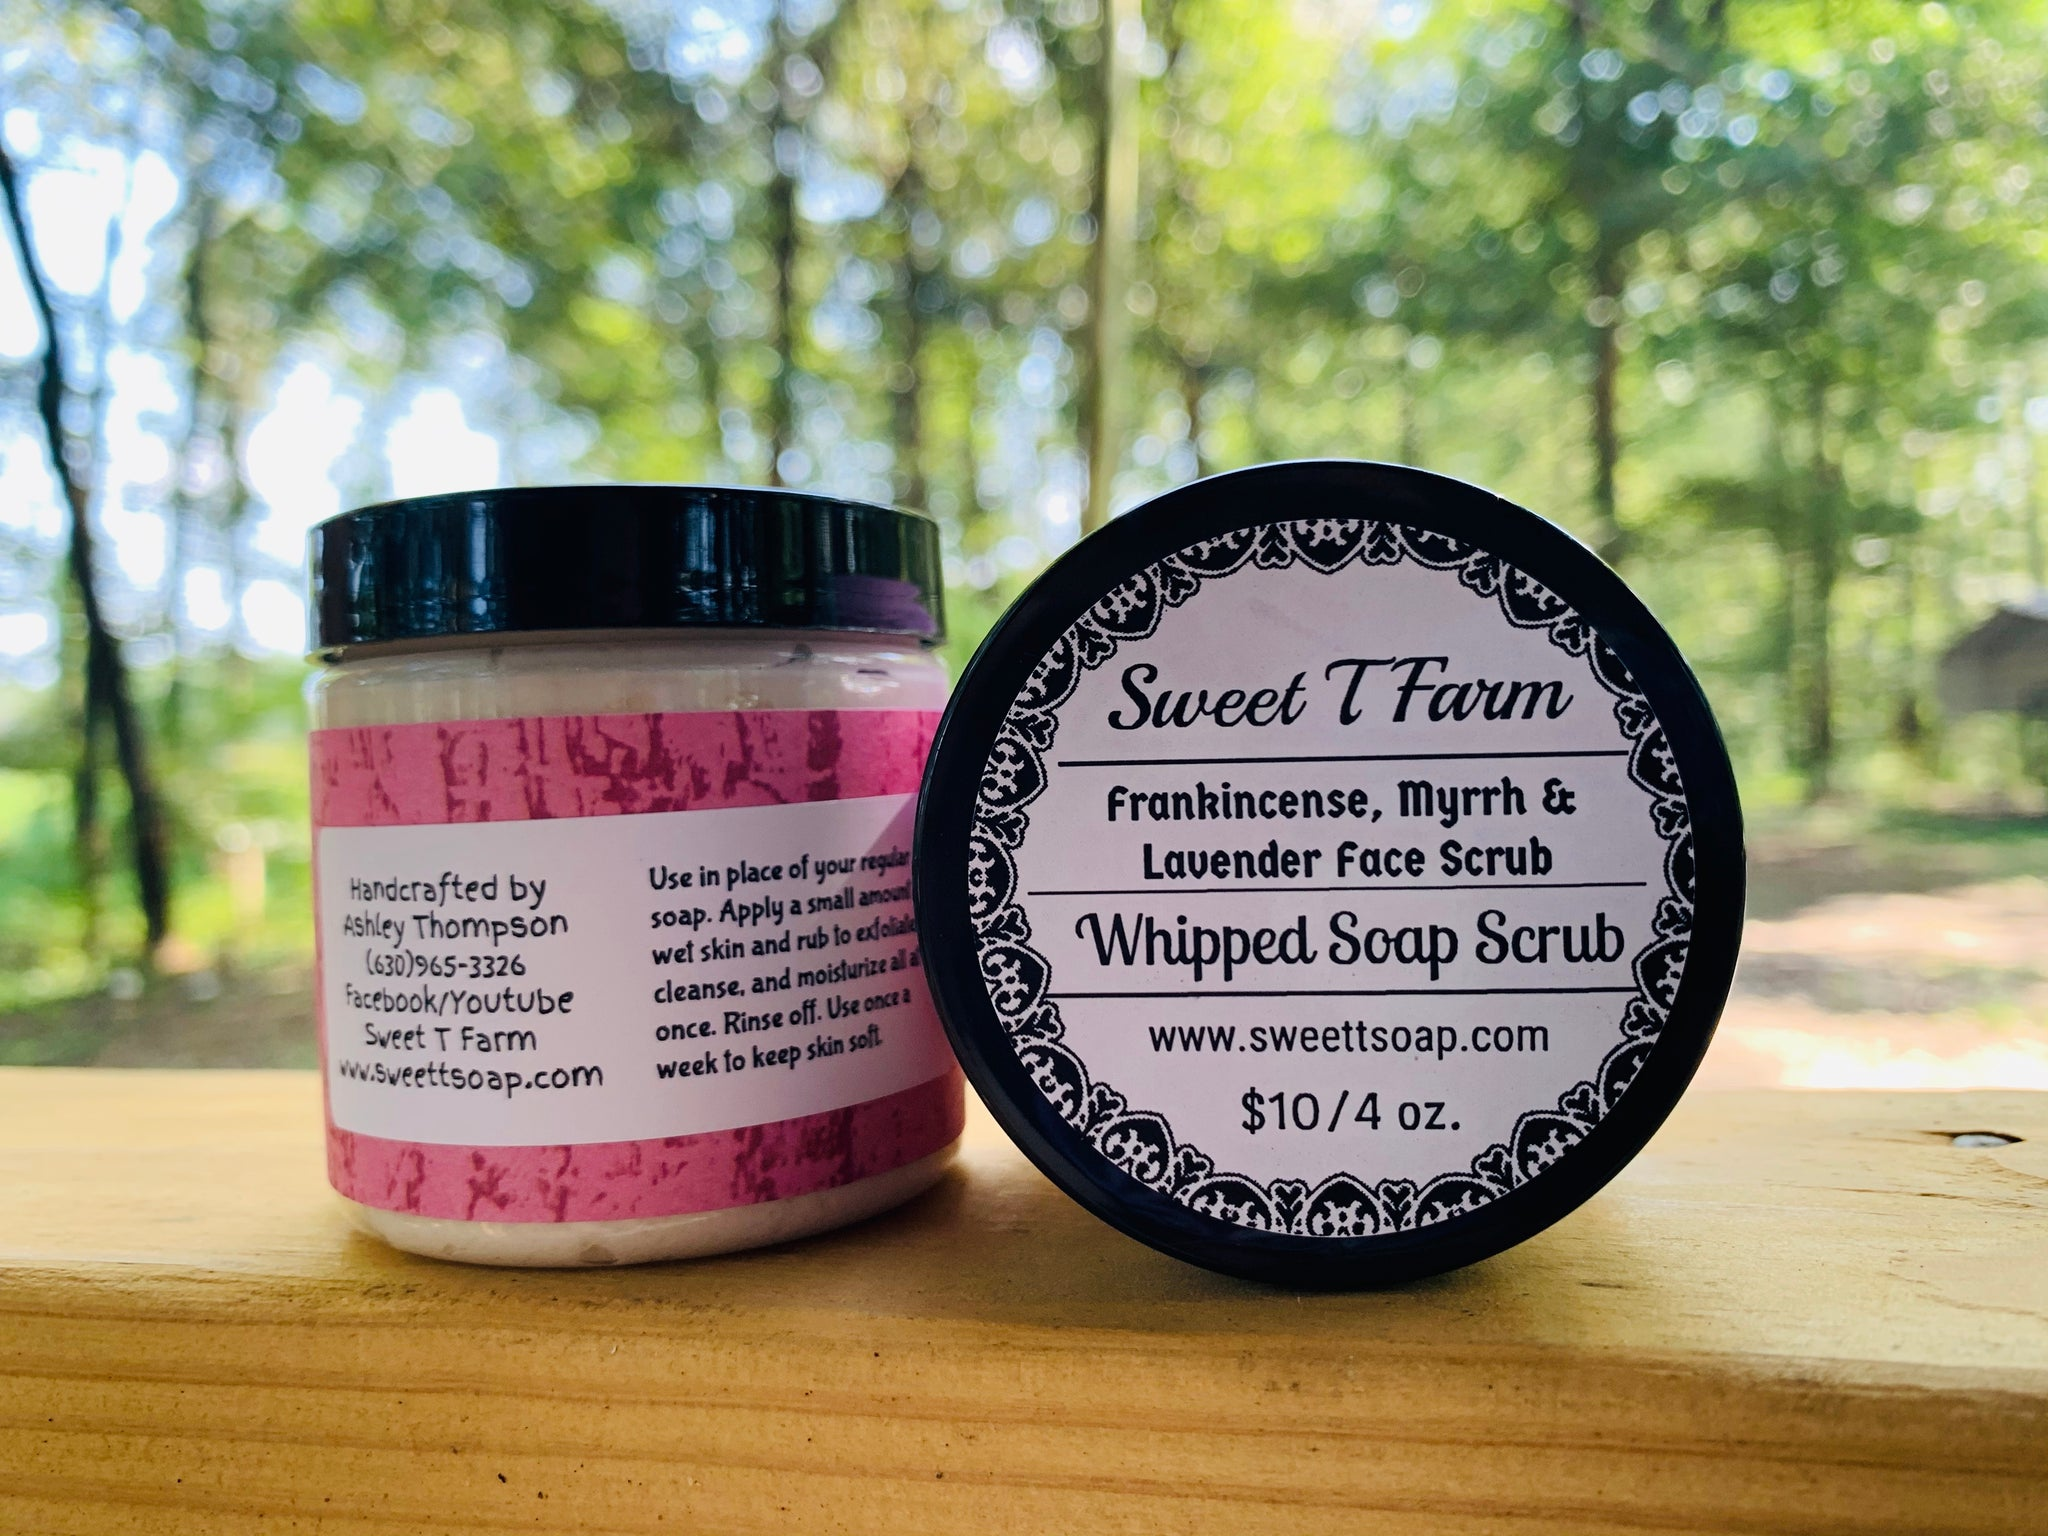 Whipped Soap Face Scrub